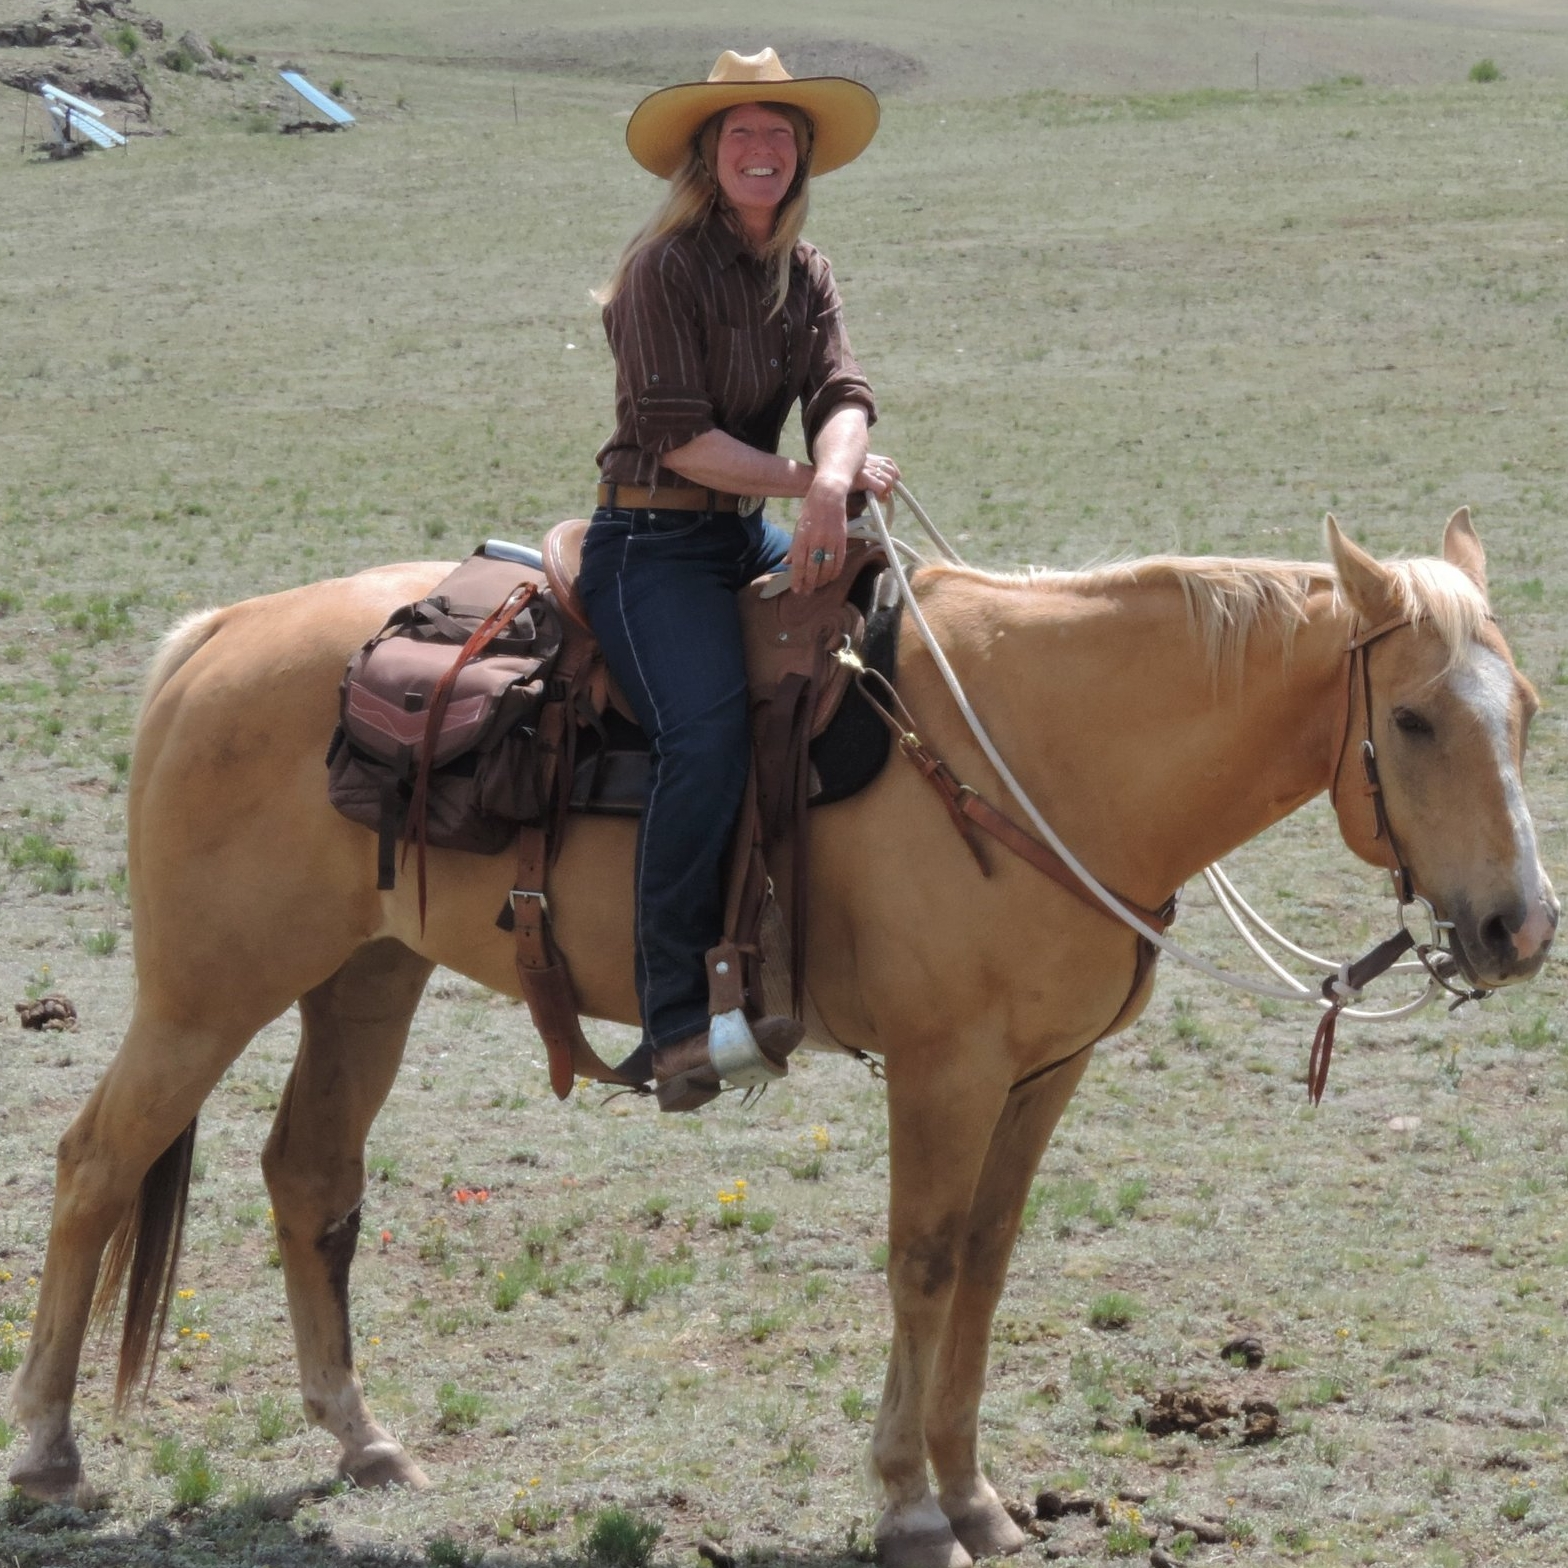 Chrissy McFarren   Chrissy has a love for the land and all the beings that inhabit it.  She is an intuitive horsewoman with a lifetime of experience, from training and exercising Thoroughbreds on the track, to caring for rescue and rehab horses, to teaching beginners to ride, she does it all with a sensitivity that puts both horses and humans at ease.  Prior to purchasing Badger Creek Ranch, Chrissy owned and operated Full Circle Farm in West Virginia where she, and her family, hosted farm stays and retreats.  She is a trained facilitator and in 2011 she founded a non-profit dedicated to healing and self-development through connection with nature.   Chrissy is knowledgeable in holistic farm and ranching practices having raised and sold pastured pork and poultry for 8 years at Full Circle Farm.  Chrissy oversees the purchase, care, pasture rotation, and processing of our pastured pork and poultry.   Skilled in hospitality, Chrissy creates and oversees a clean, comfortable space for guests that makes them immediately feel at home.  Guests enjoy learning about the Native American history and culture as Chrissy shares her extensive knowledge of Native tradition.  Dedicated to caring for the animals and the land, Chrissy keeps a close eye on both, riding out to check and move cattle, monitor grass, water, and fences, all while ensuring a safe, enjoyable experience for our guests.